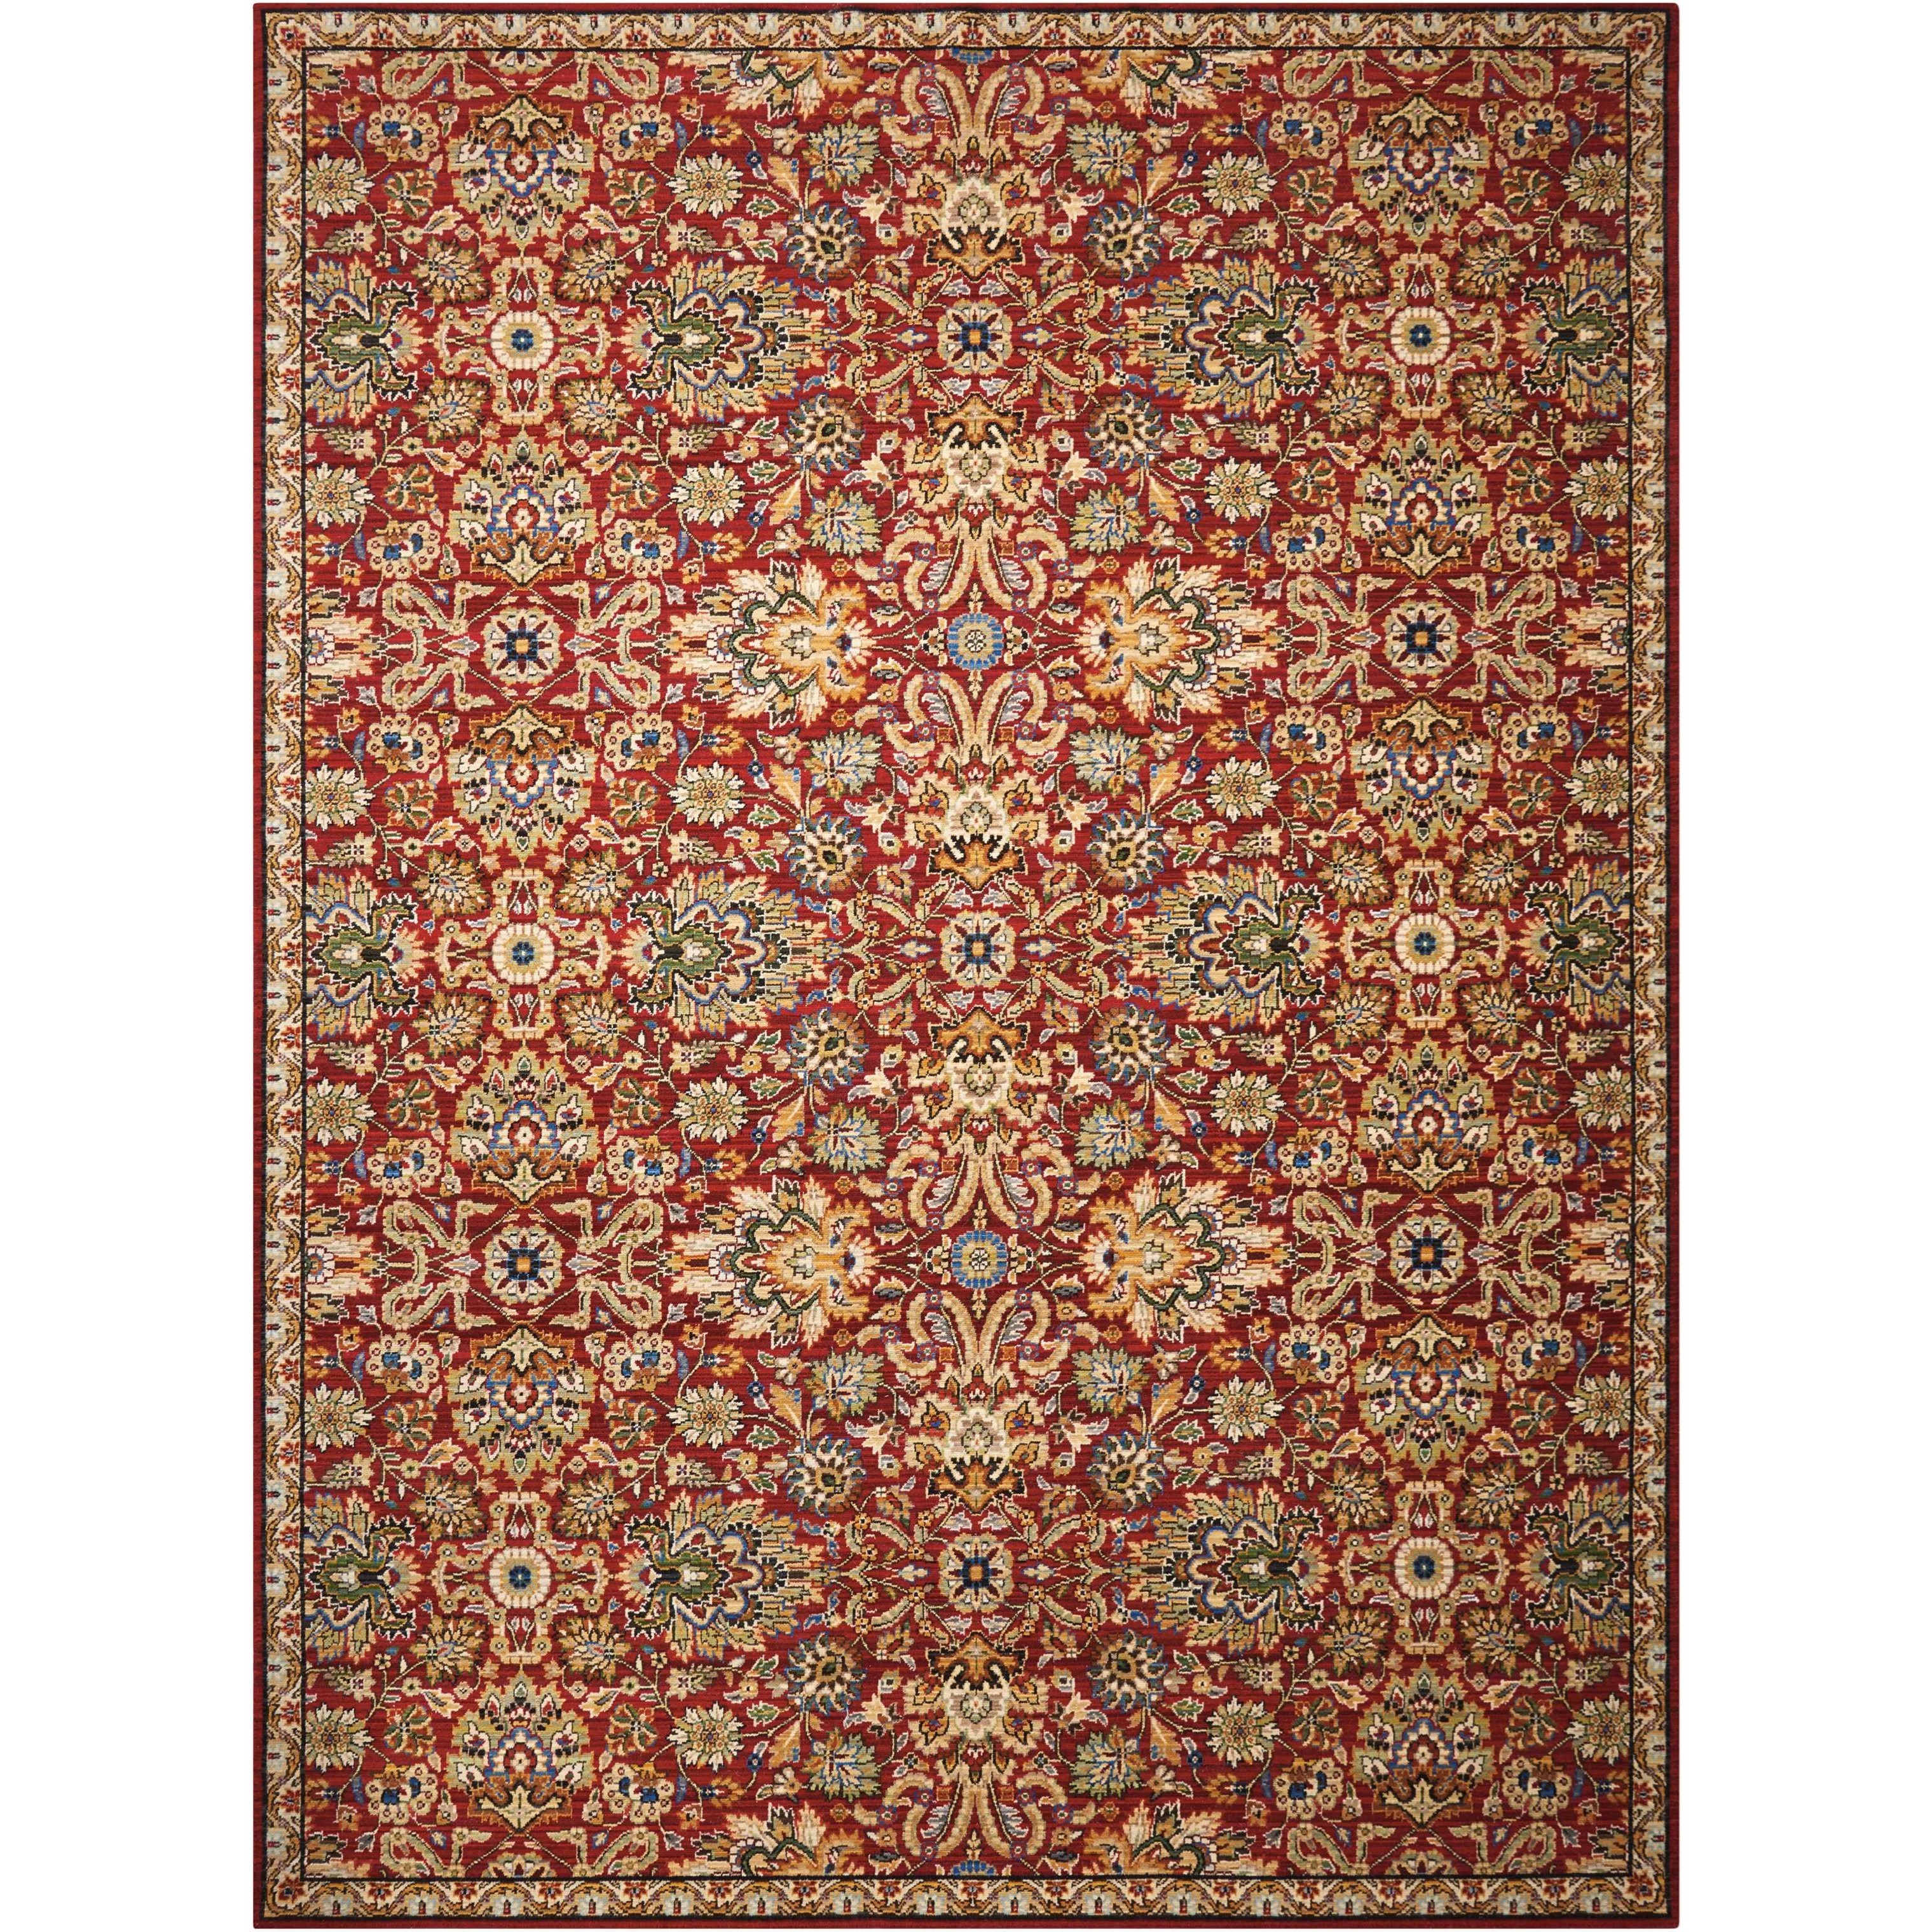 """Timeless 8'6"""" x 11'6"""" Red Rectangle Rug by Nourison at Home Collections Furniture"""